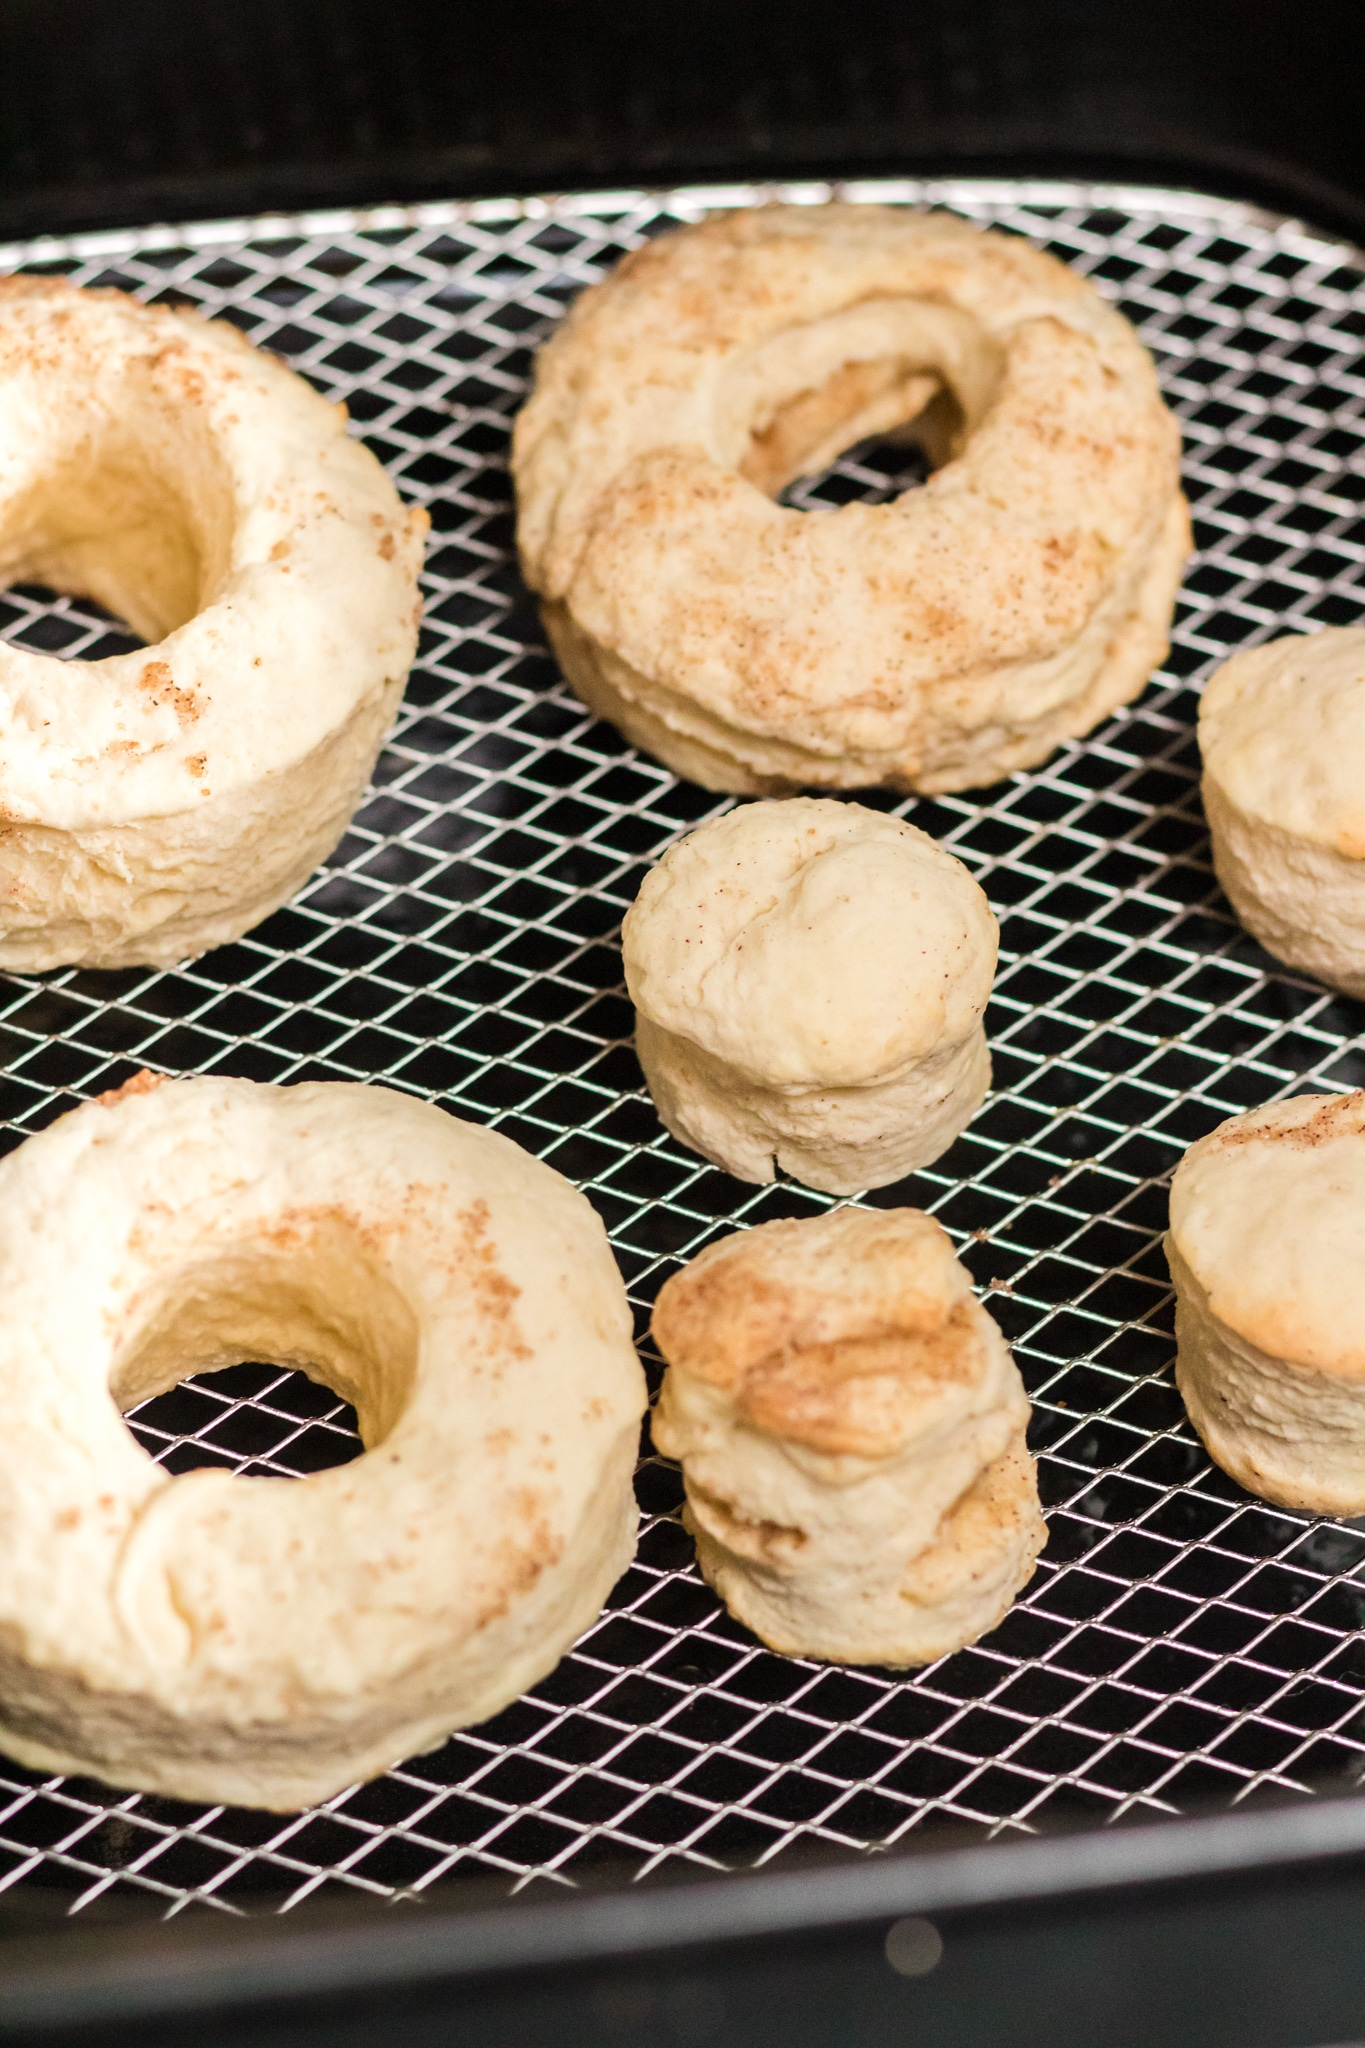 Air Fyrer Pumpkin Spice Donuts Cooked Donuts. Fill your home with the smell of freshly made Air Fryer Pumpkin Spice Donuts, perfect for this beautiful fall weather we are having. These easy to make Pumpkin Spice Donuts have a crisp outer coating yet they so soft fluffy inside, enjoy them with a healthy coating of cinnamon sugar, or your favorite glaze.